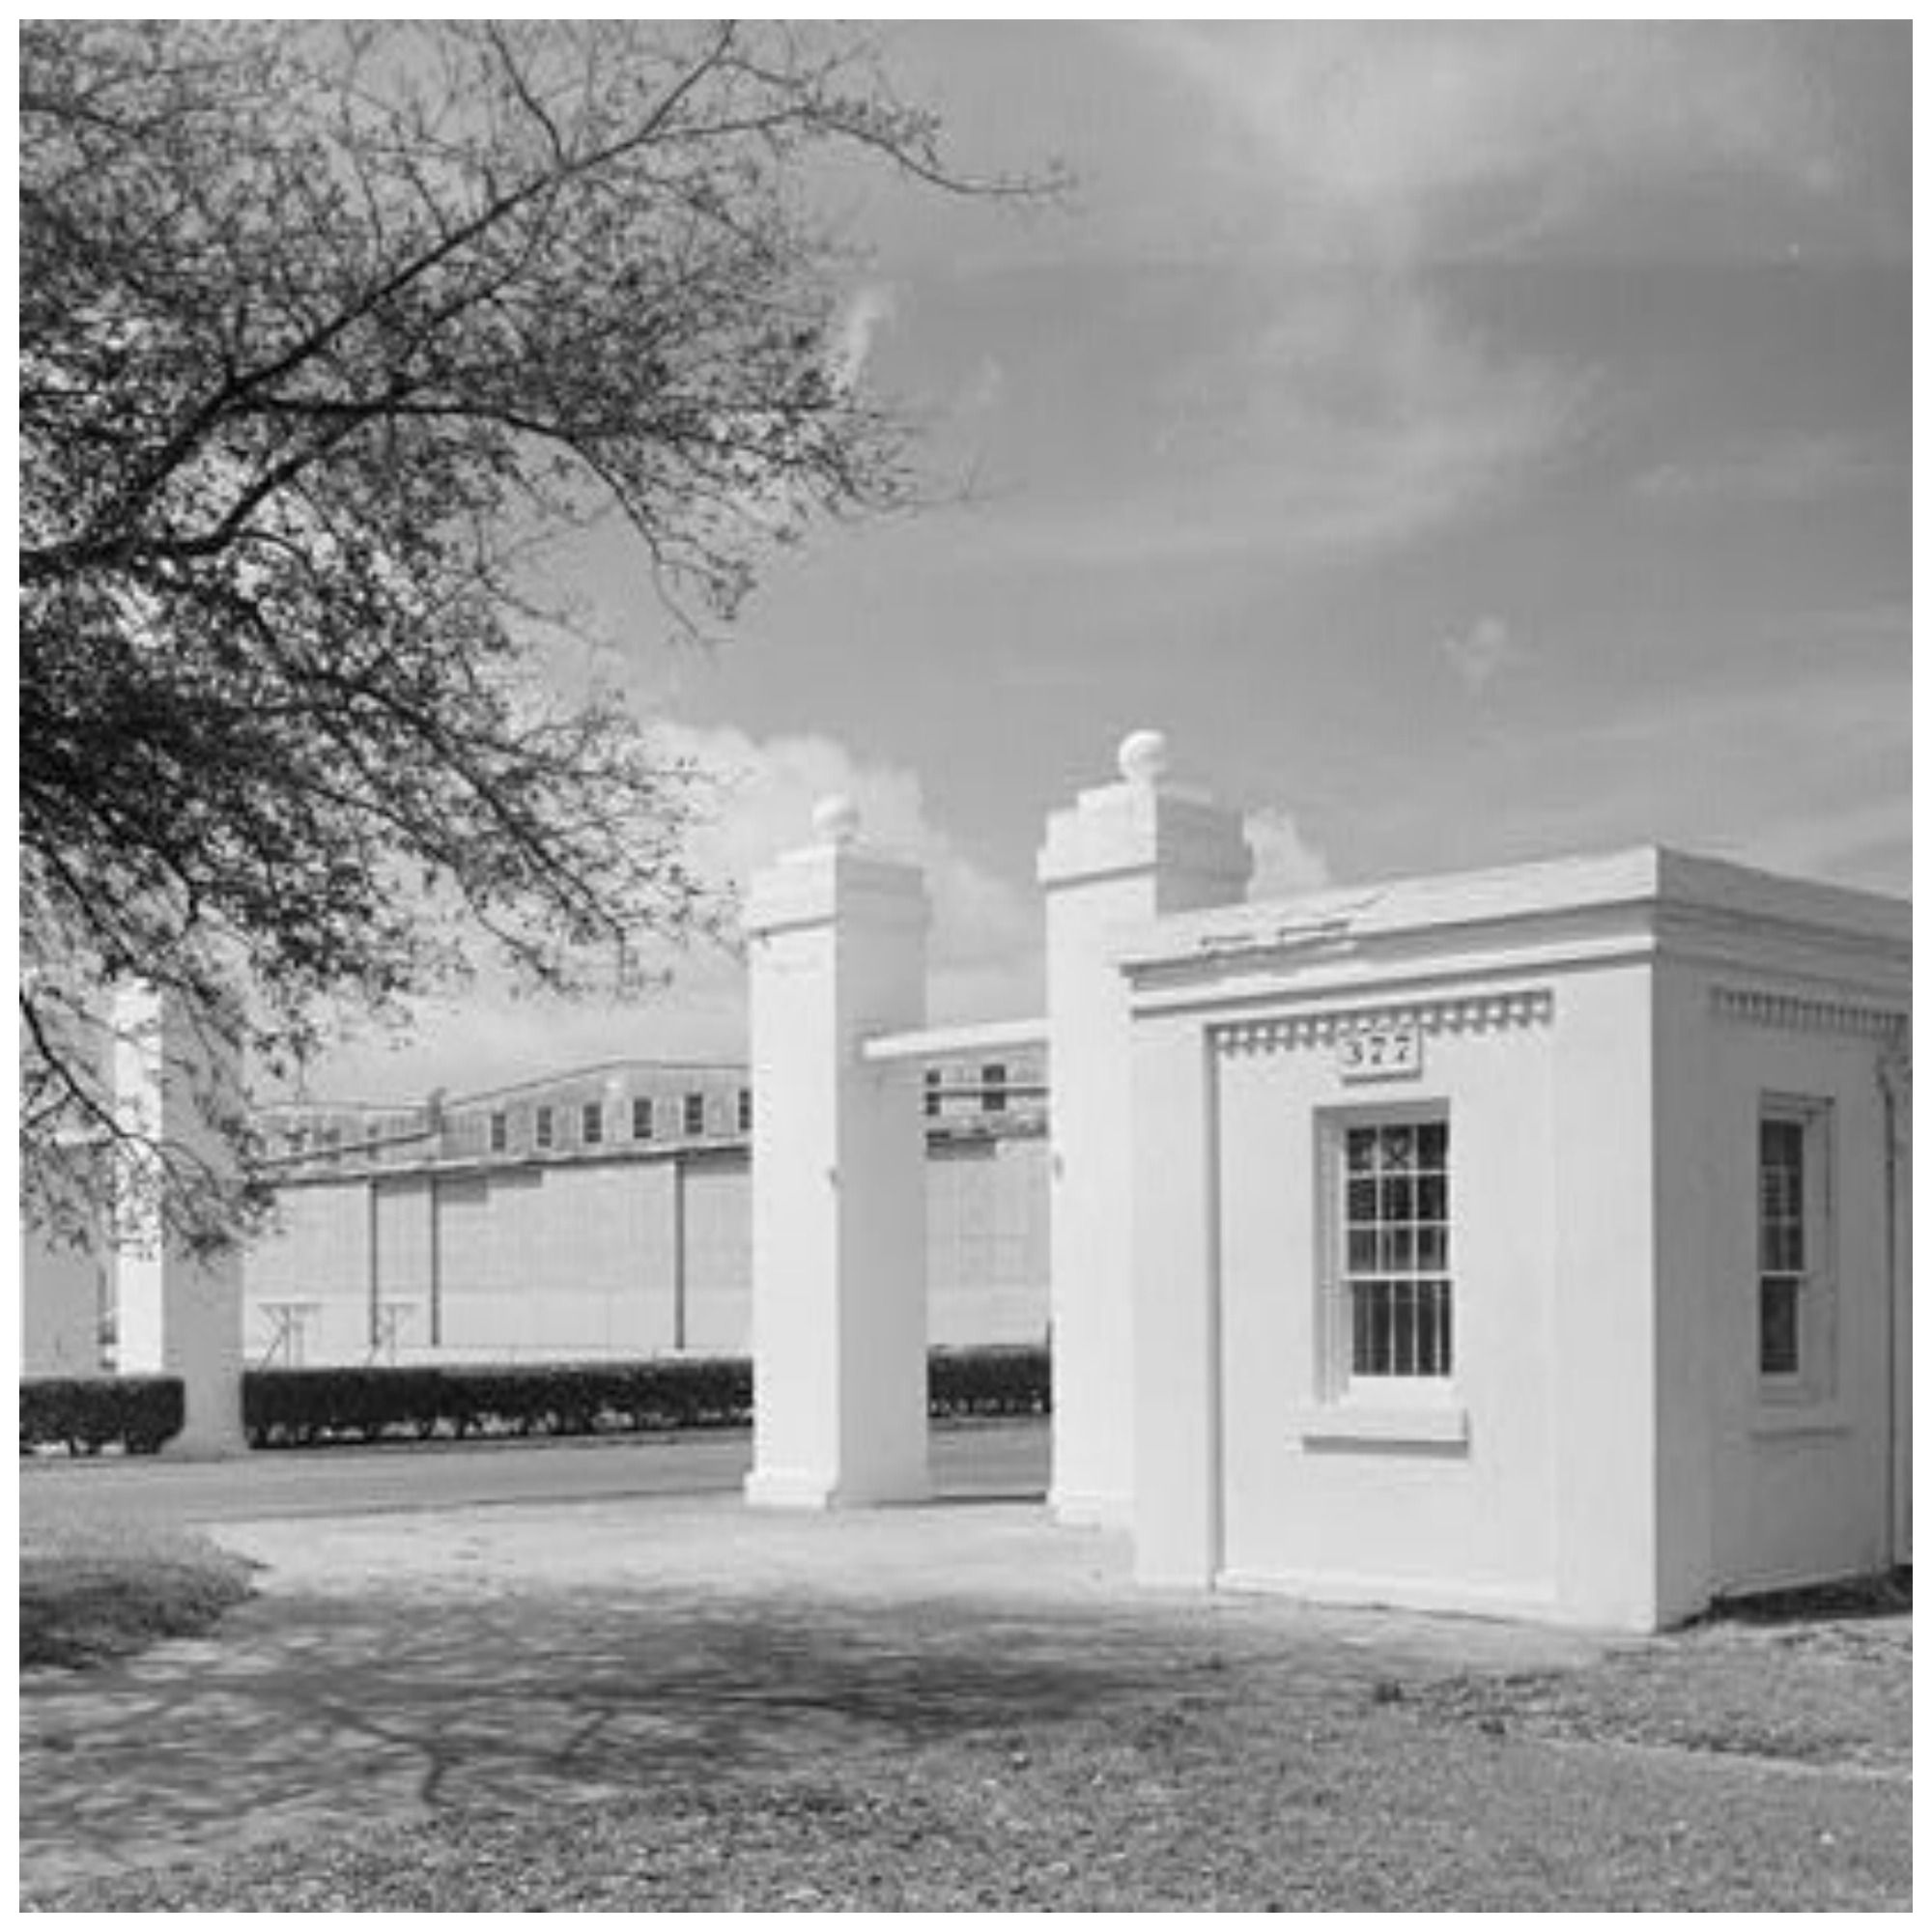 Pensacola Naval Air Station Historic DistrictOpened in